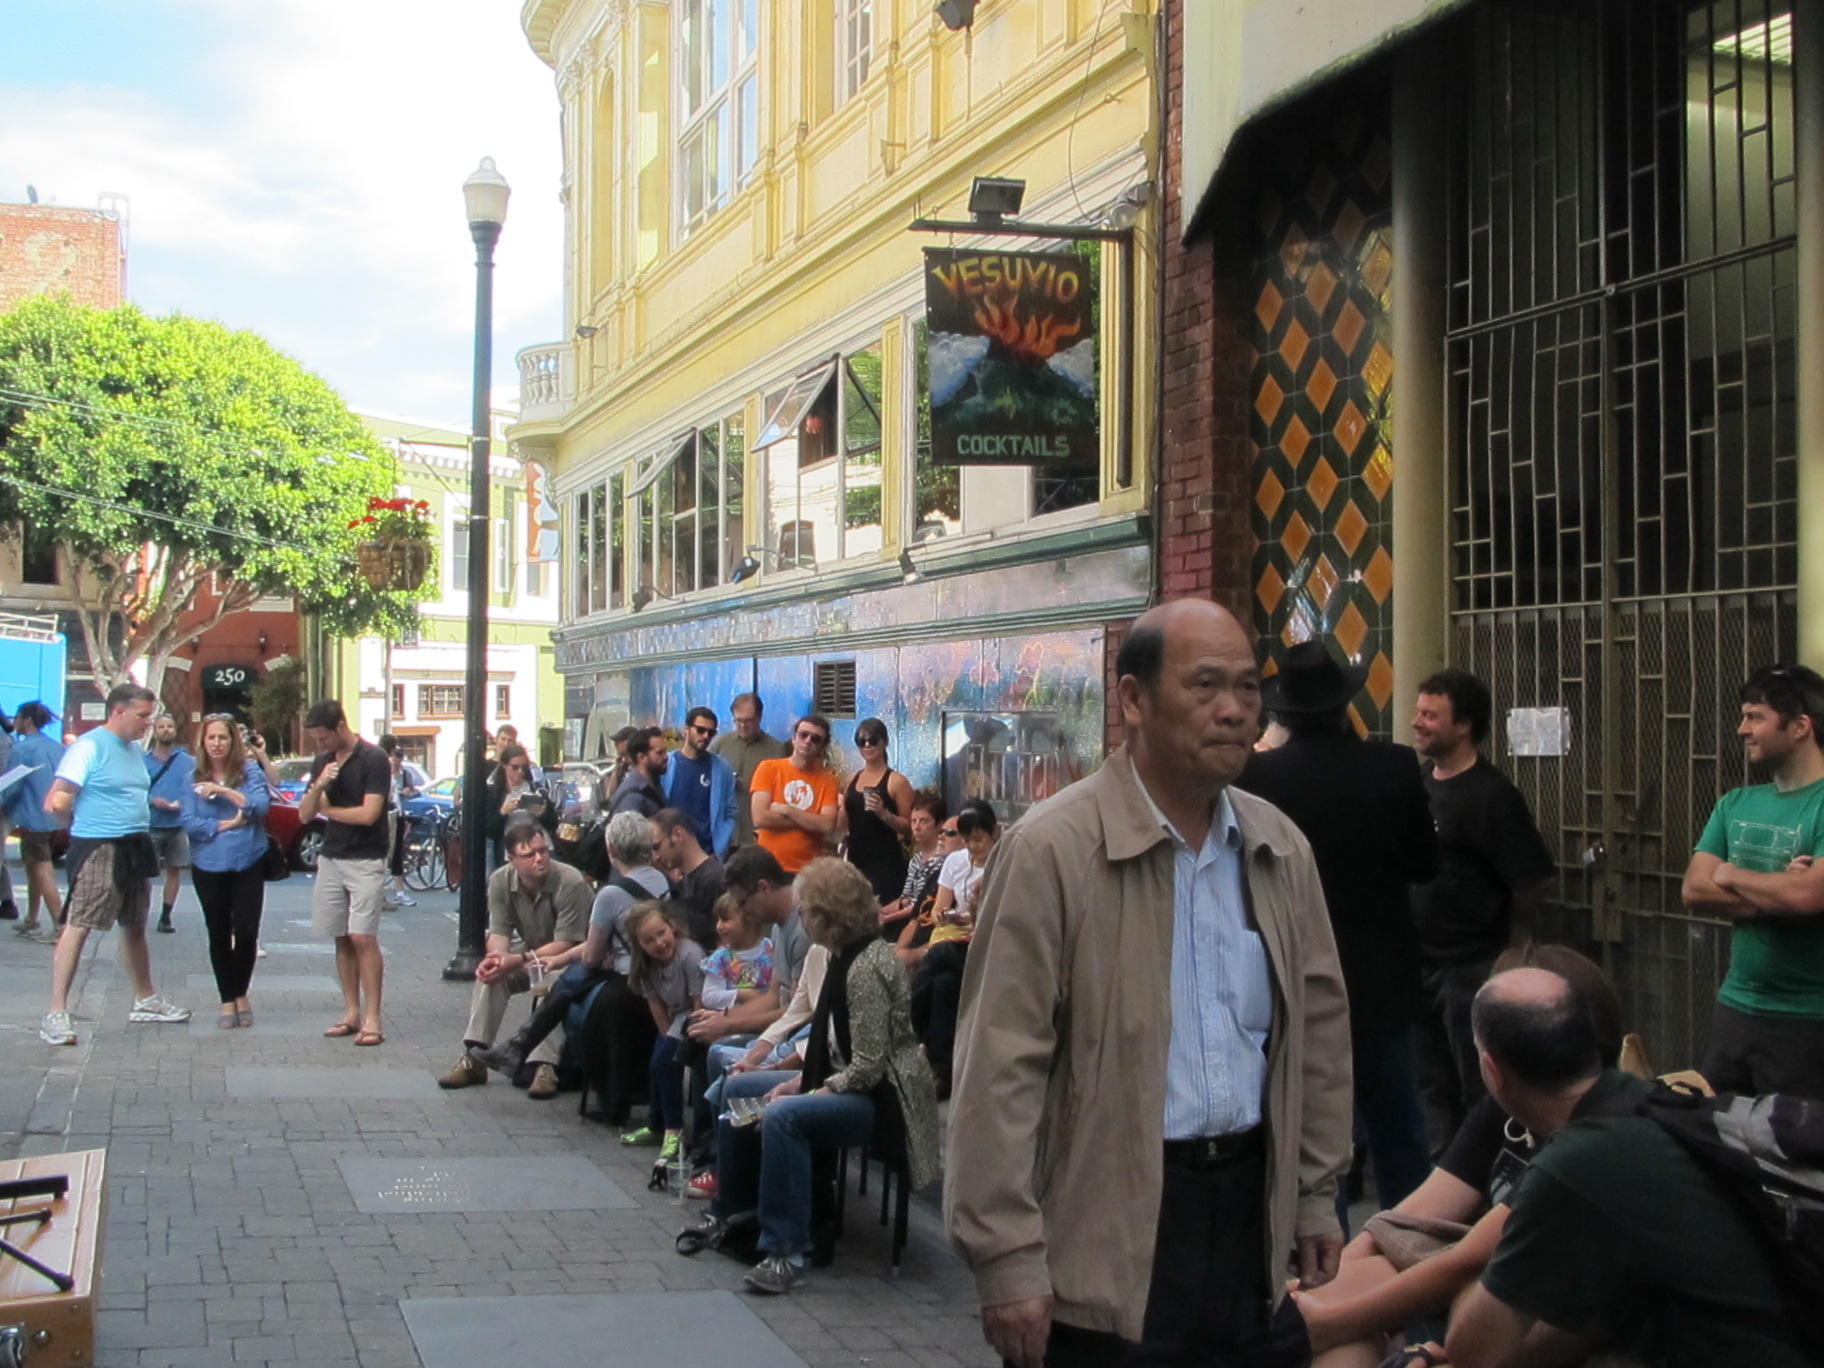 A gathering of people, some seated and some standing, on Jack Kerouac Alley outside of Vesuvio bar.